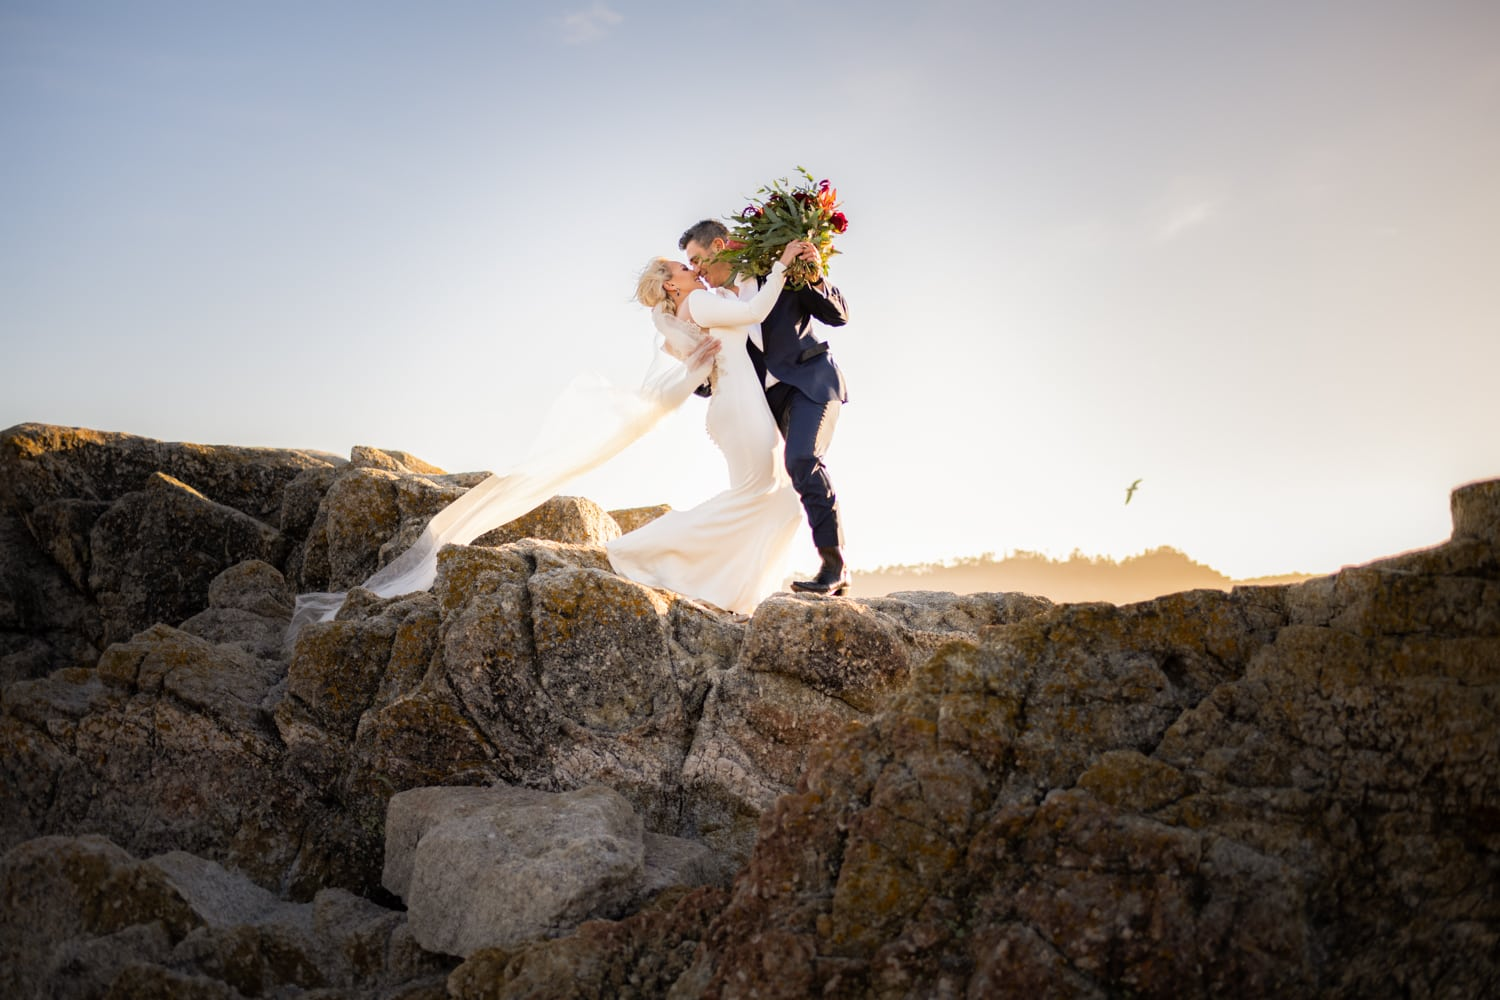 Wedding elopement in Carmel